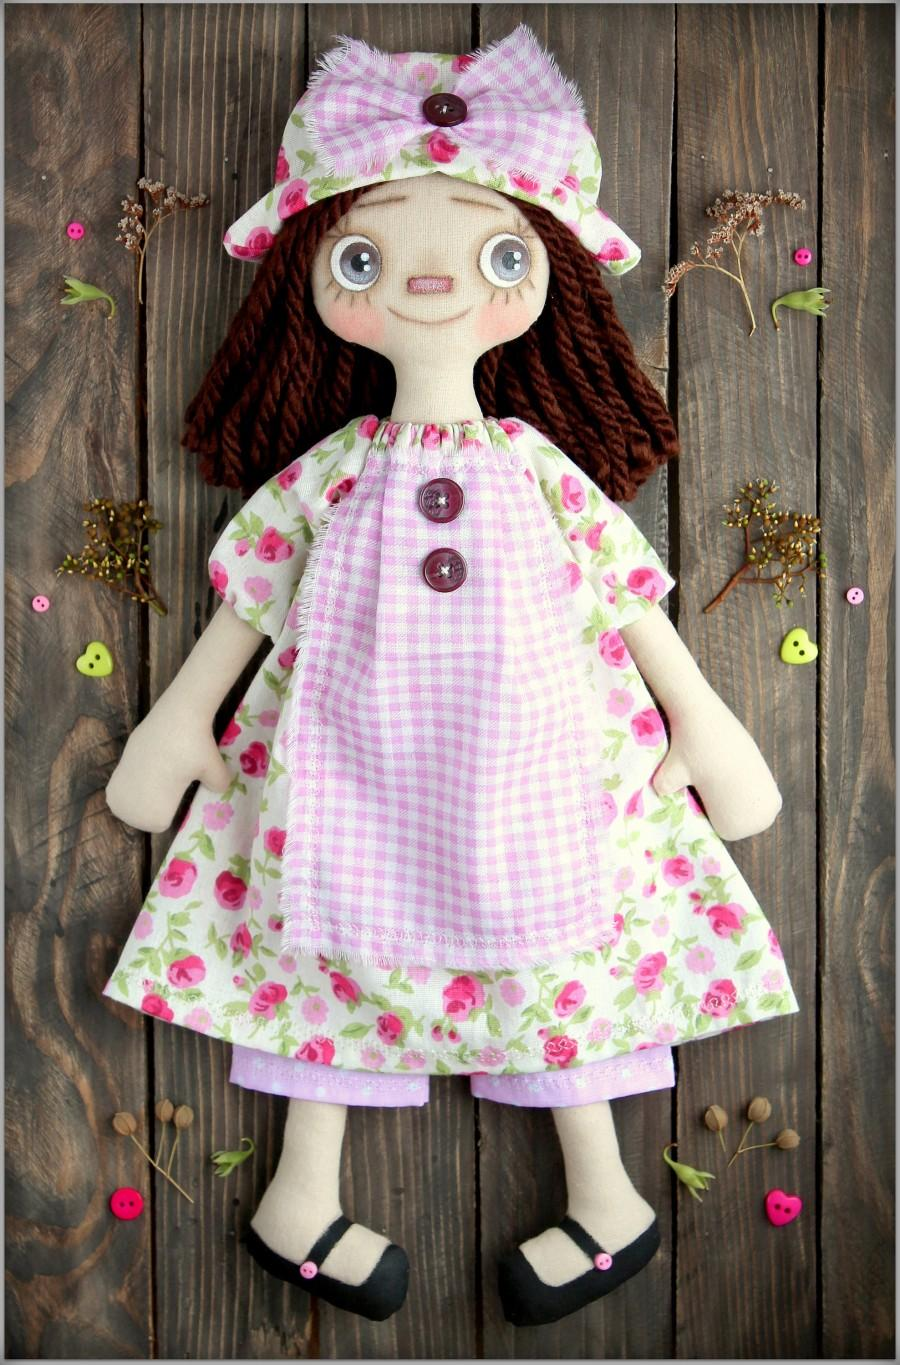 Mariage - Primitive Raggedy Doll Olivia fabric soft doll rag doll cloth doll  мягкие игрушки текстильная кукла handmade doll